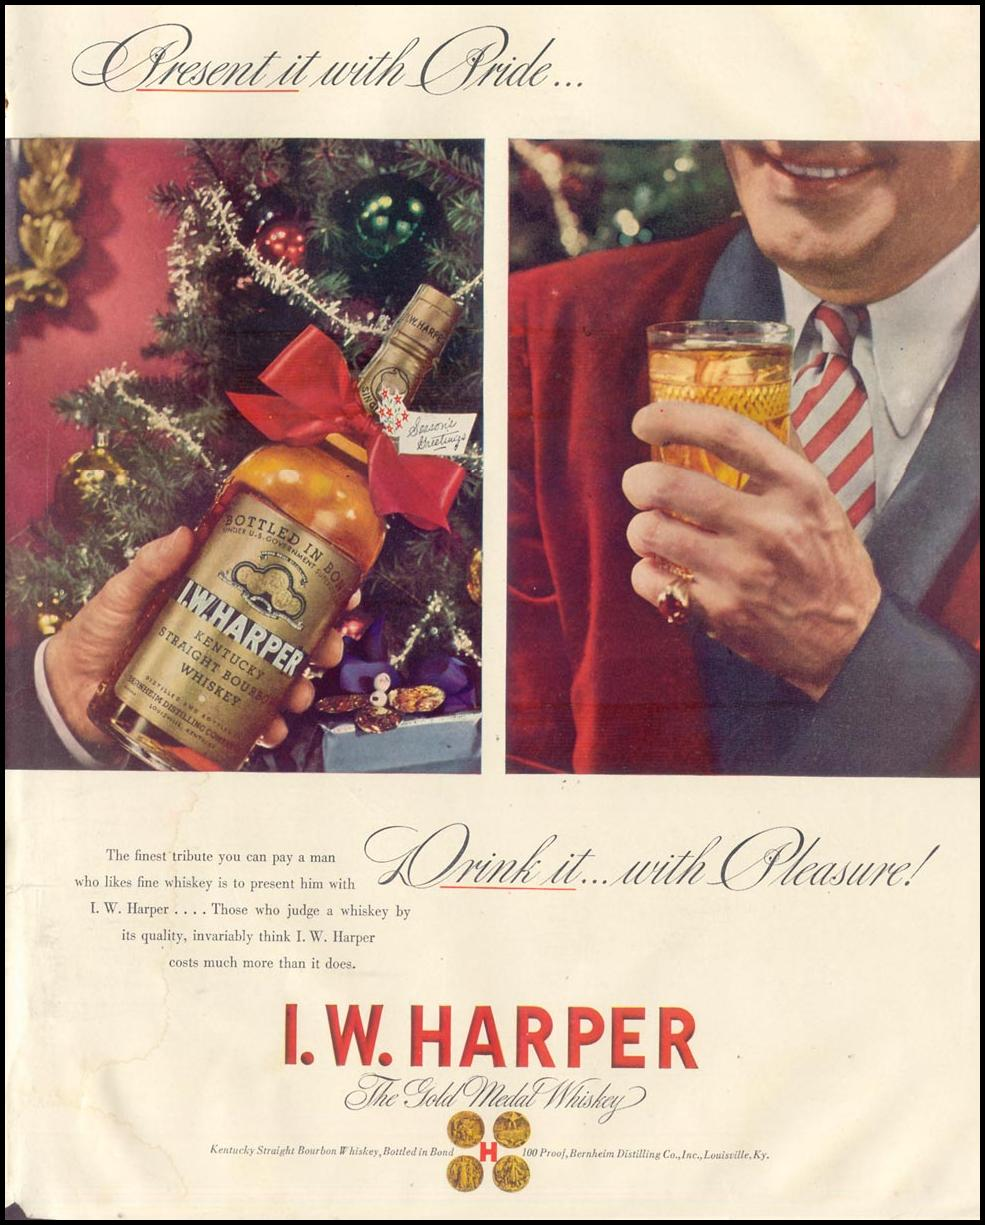 I. W. HARPER GOLD MEDAL WHISKEY LIFE 11/30/1942 INSIDE BACK